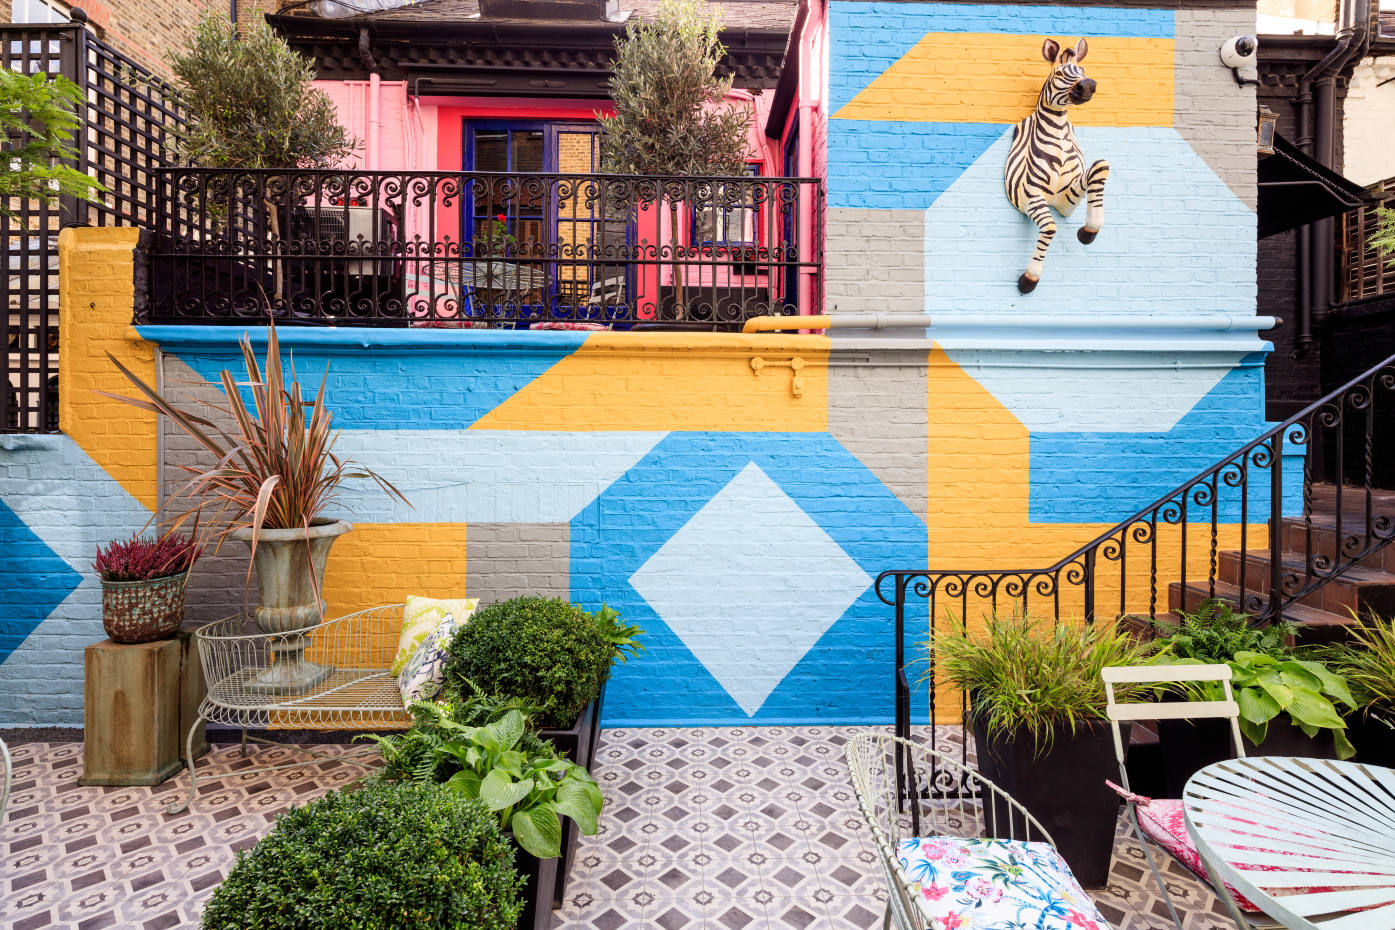 A yellow-and-blue mural creates a bold backdrop in the Blakes Hotel garden